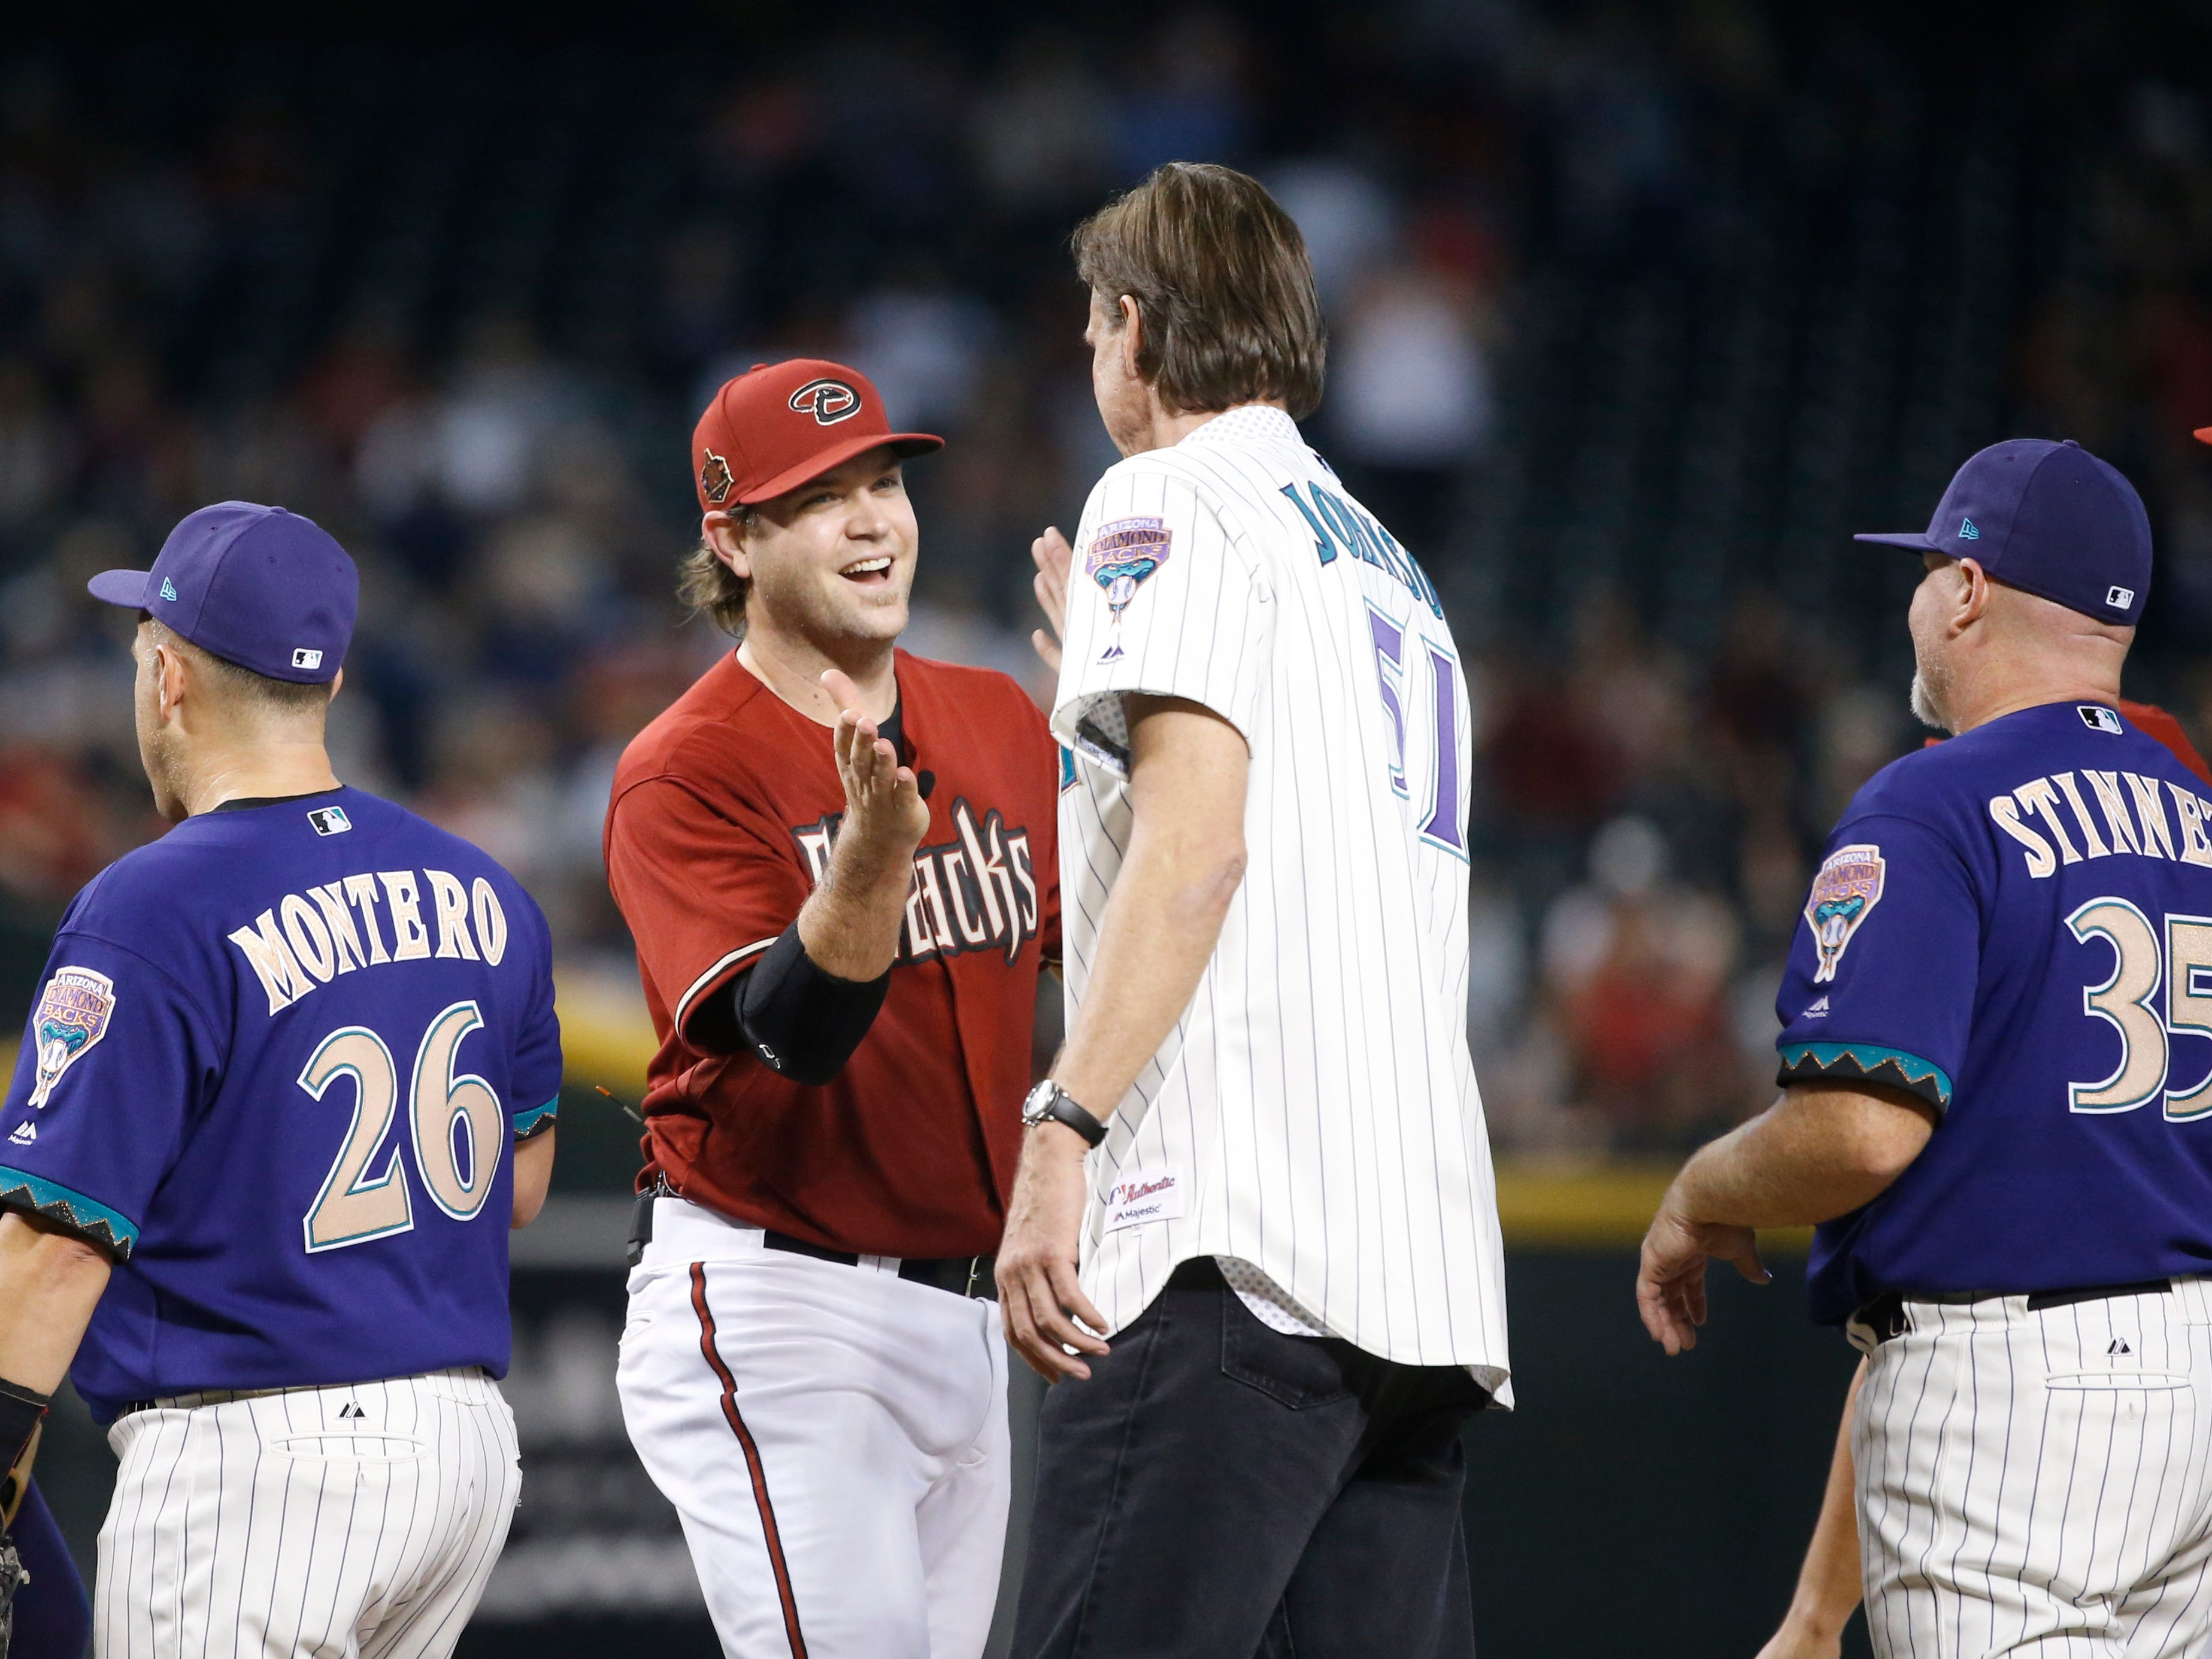 Diamondbacks Randy Johnson (51) high-fives Chris Snyder after the Generations Diamondbacks Alumni game at Chase Field in Phoenix, Ariz. on Aug. 4, 2018.